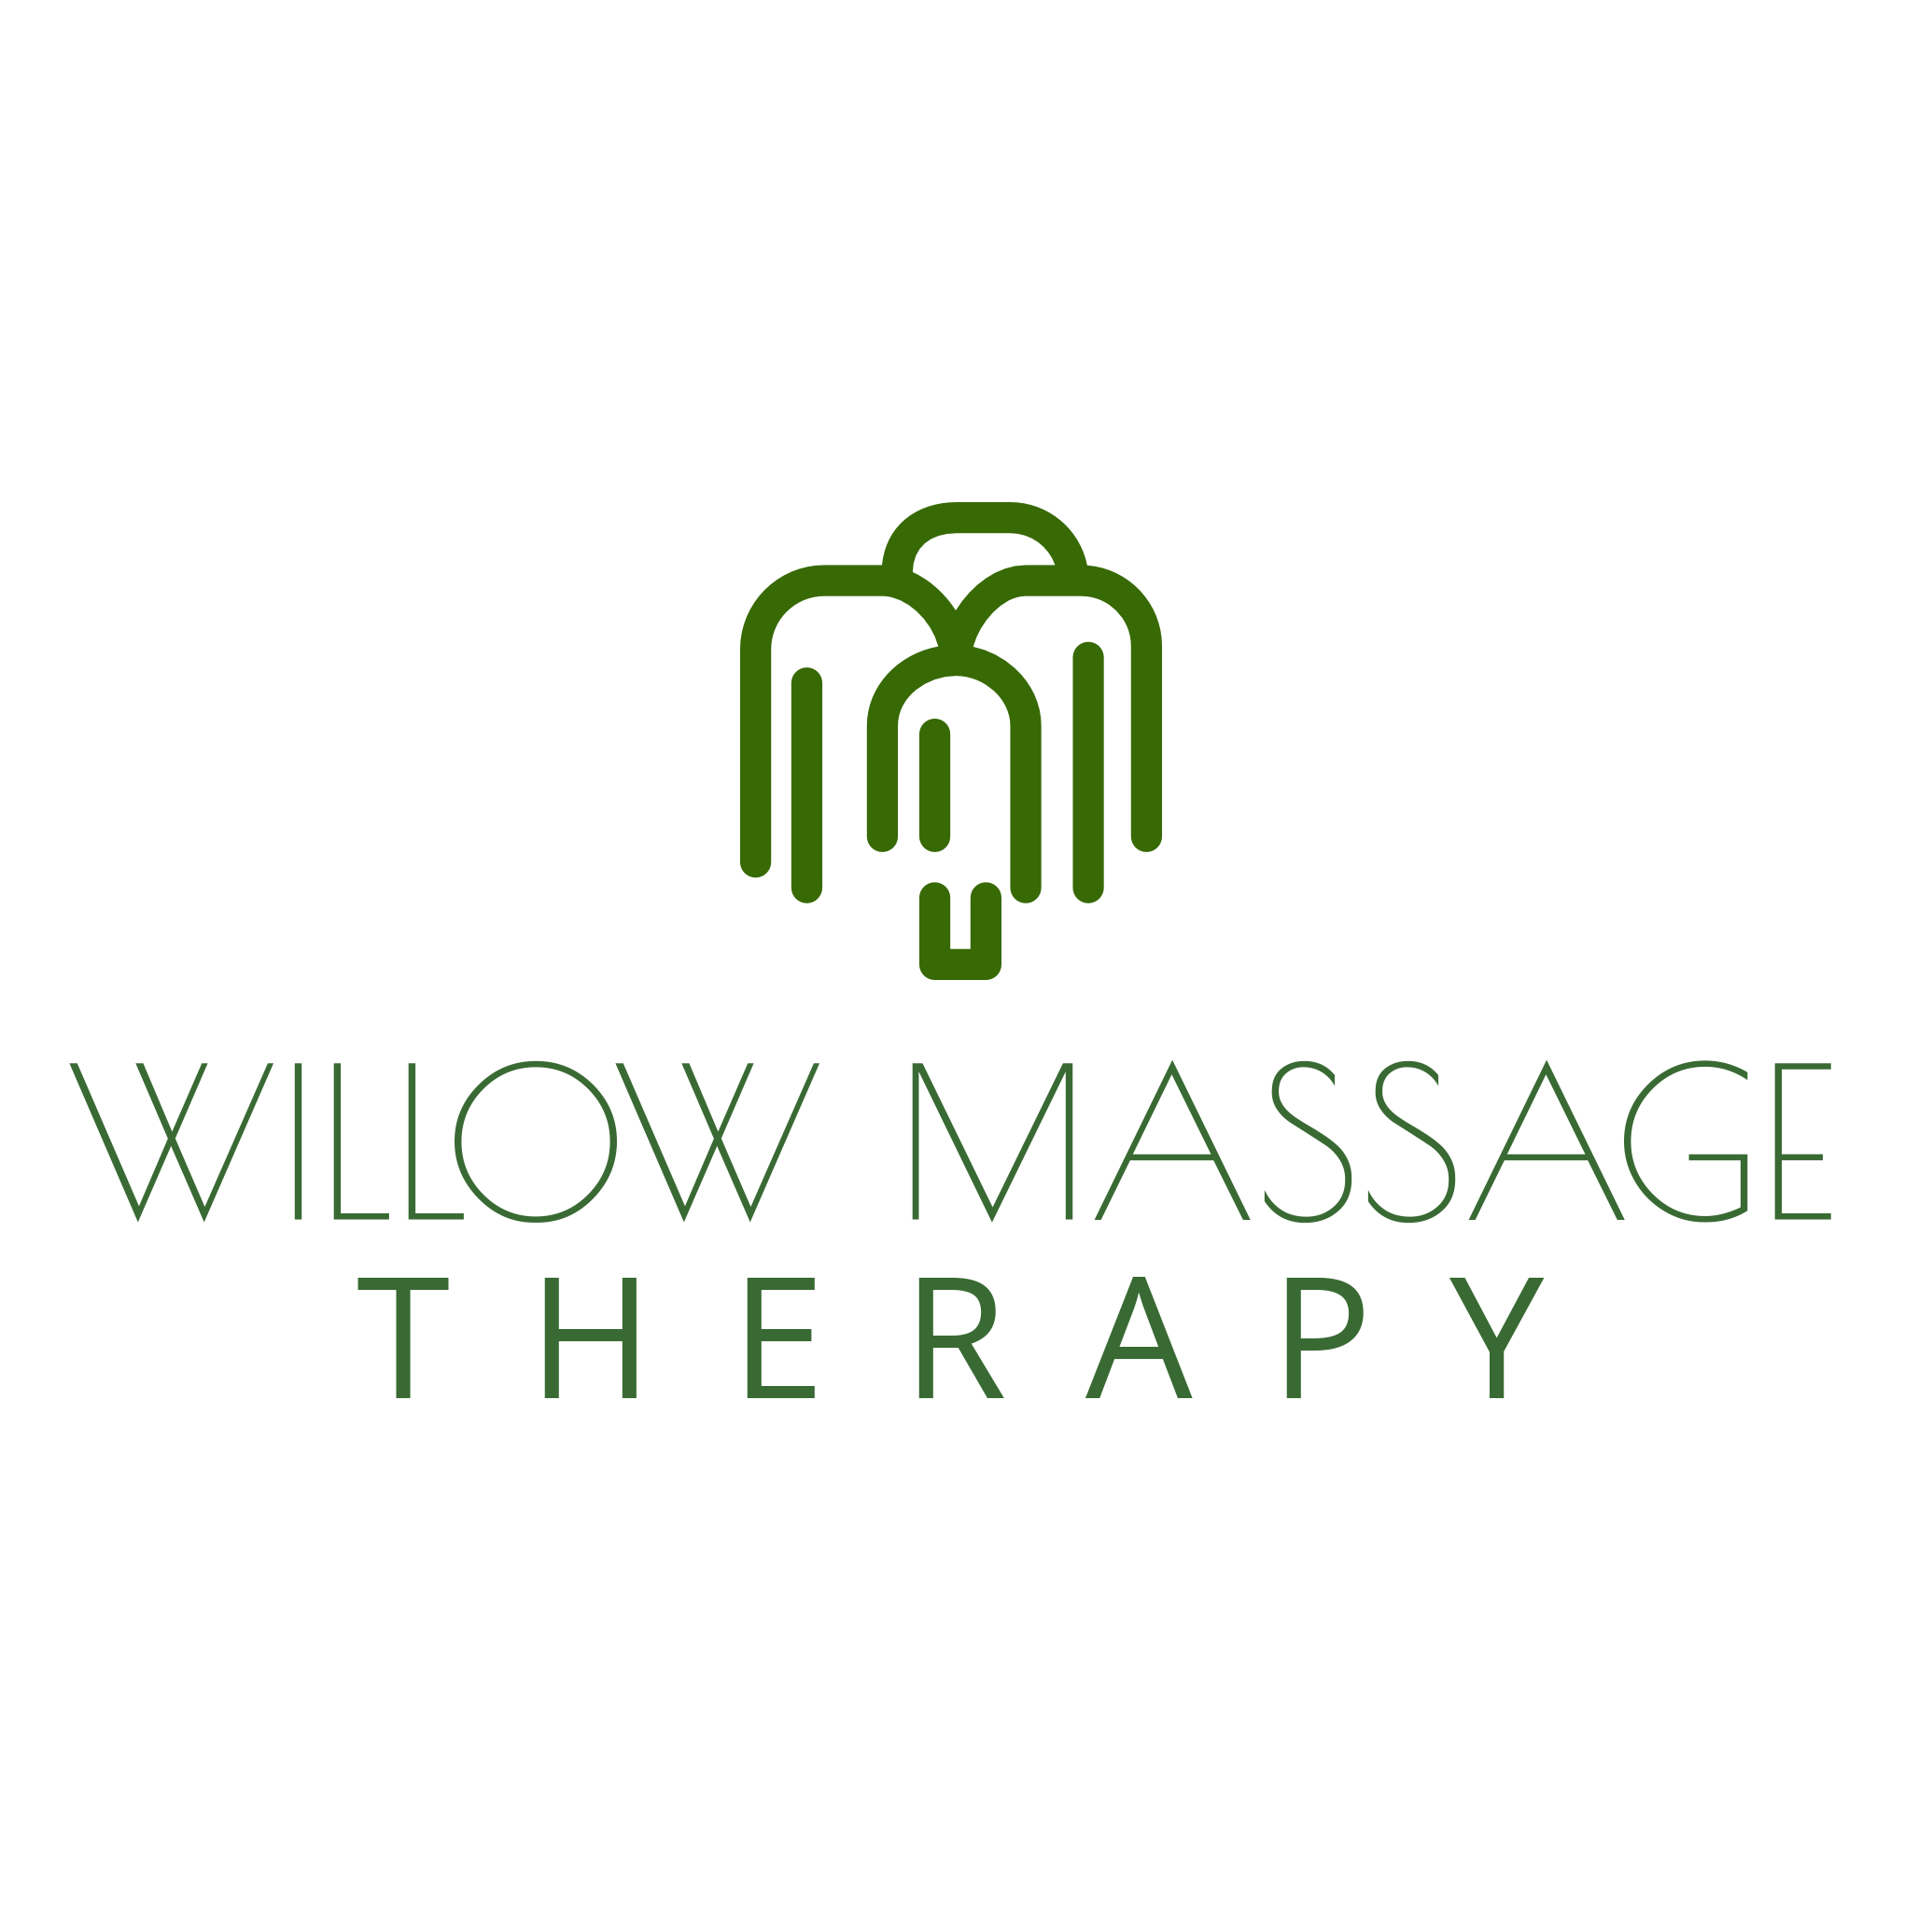 Willow Massage Therapy